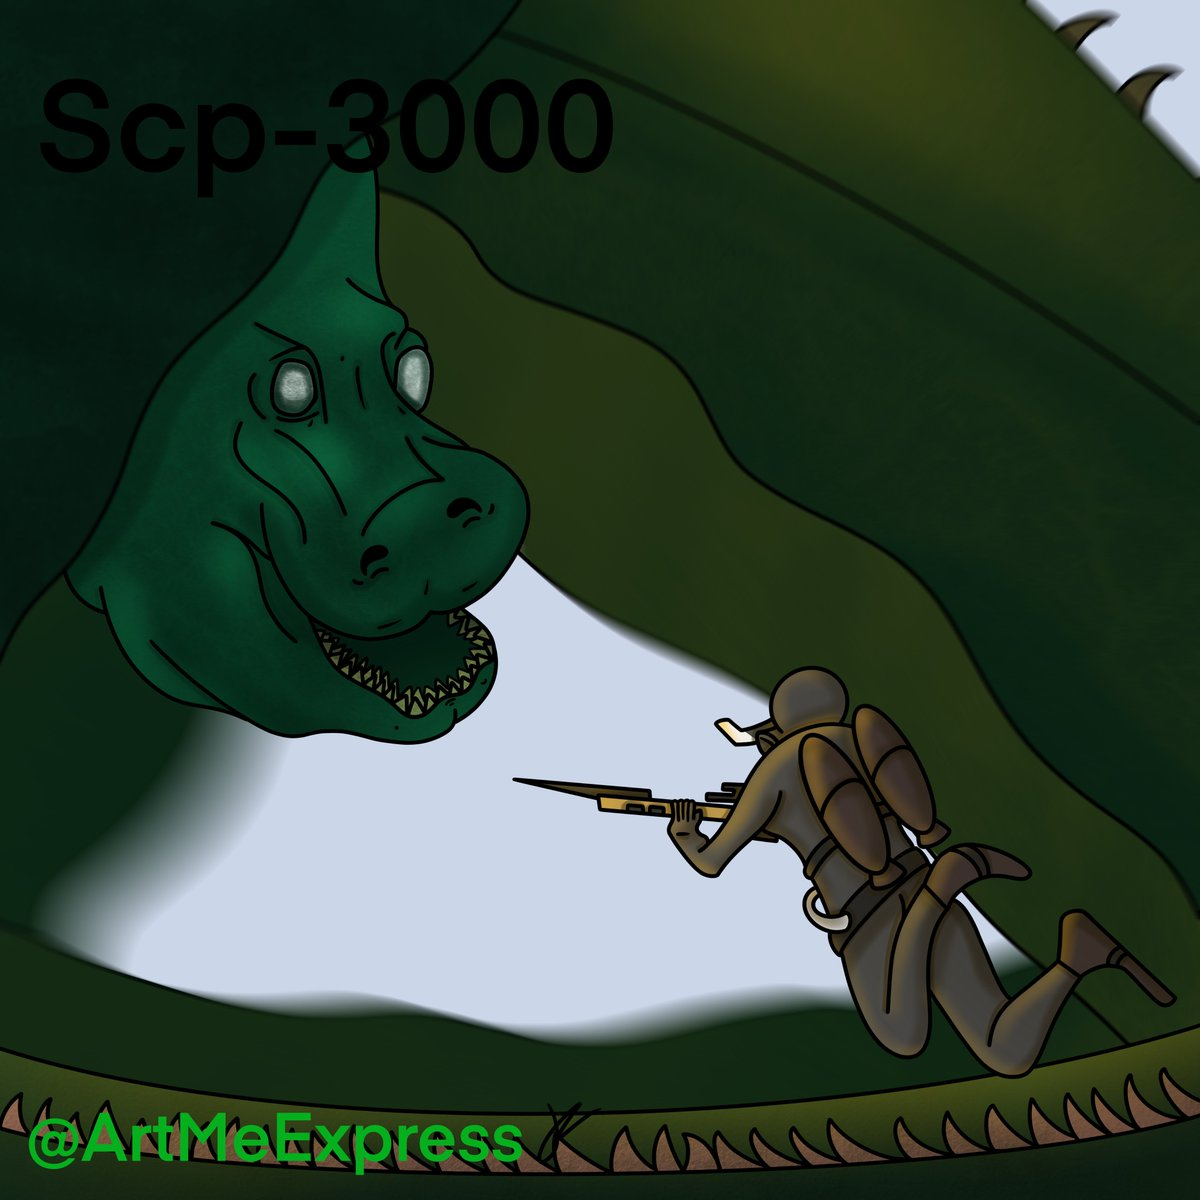 Scp3000 Hashtag On Twitter Scp 3000 is a giant eel with the power to manipulate minds and alter memories, among other things. scp3000 hashtag on twitter